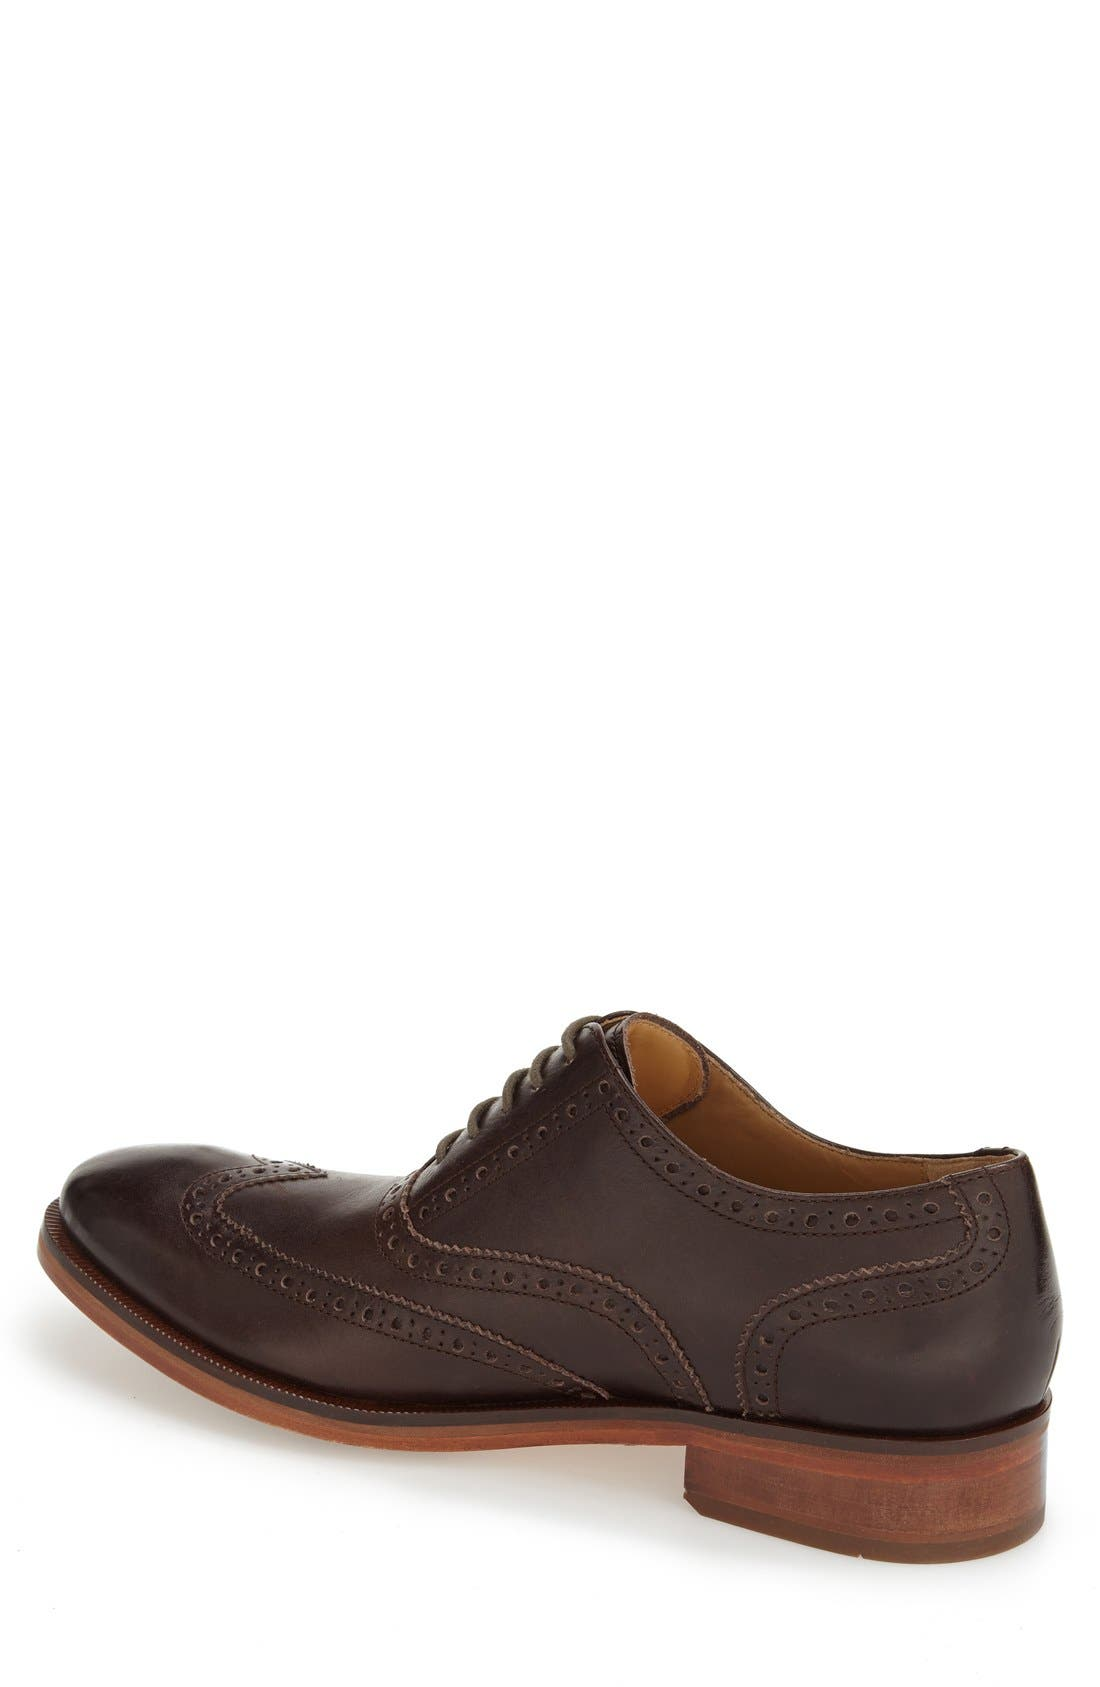 Alternate Image 2  - Cole Haan 'Colton' Wingtip Oxford